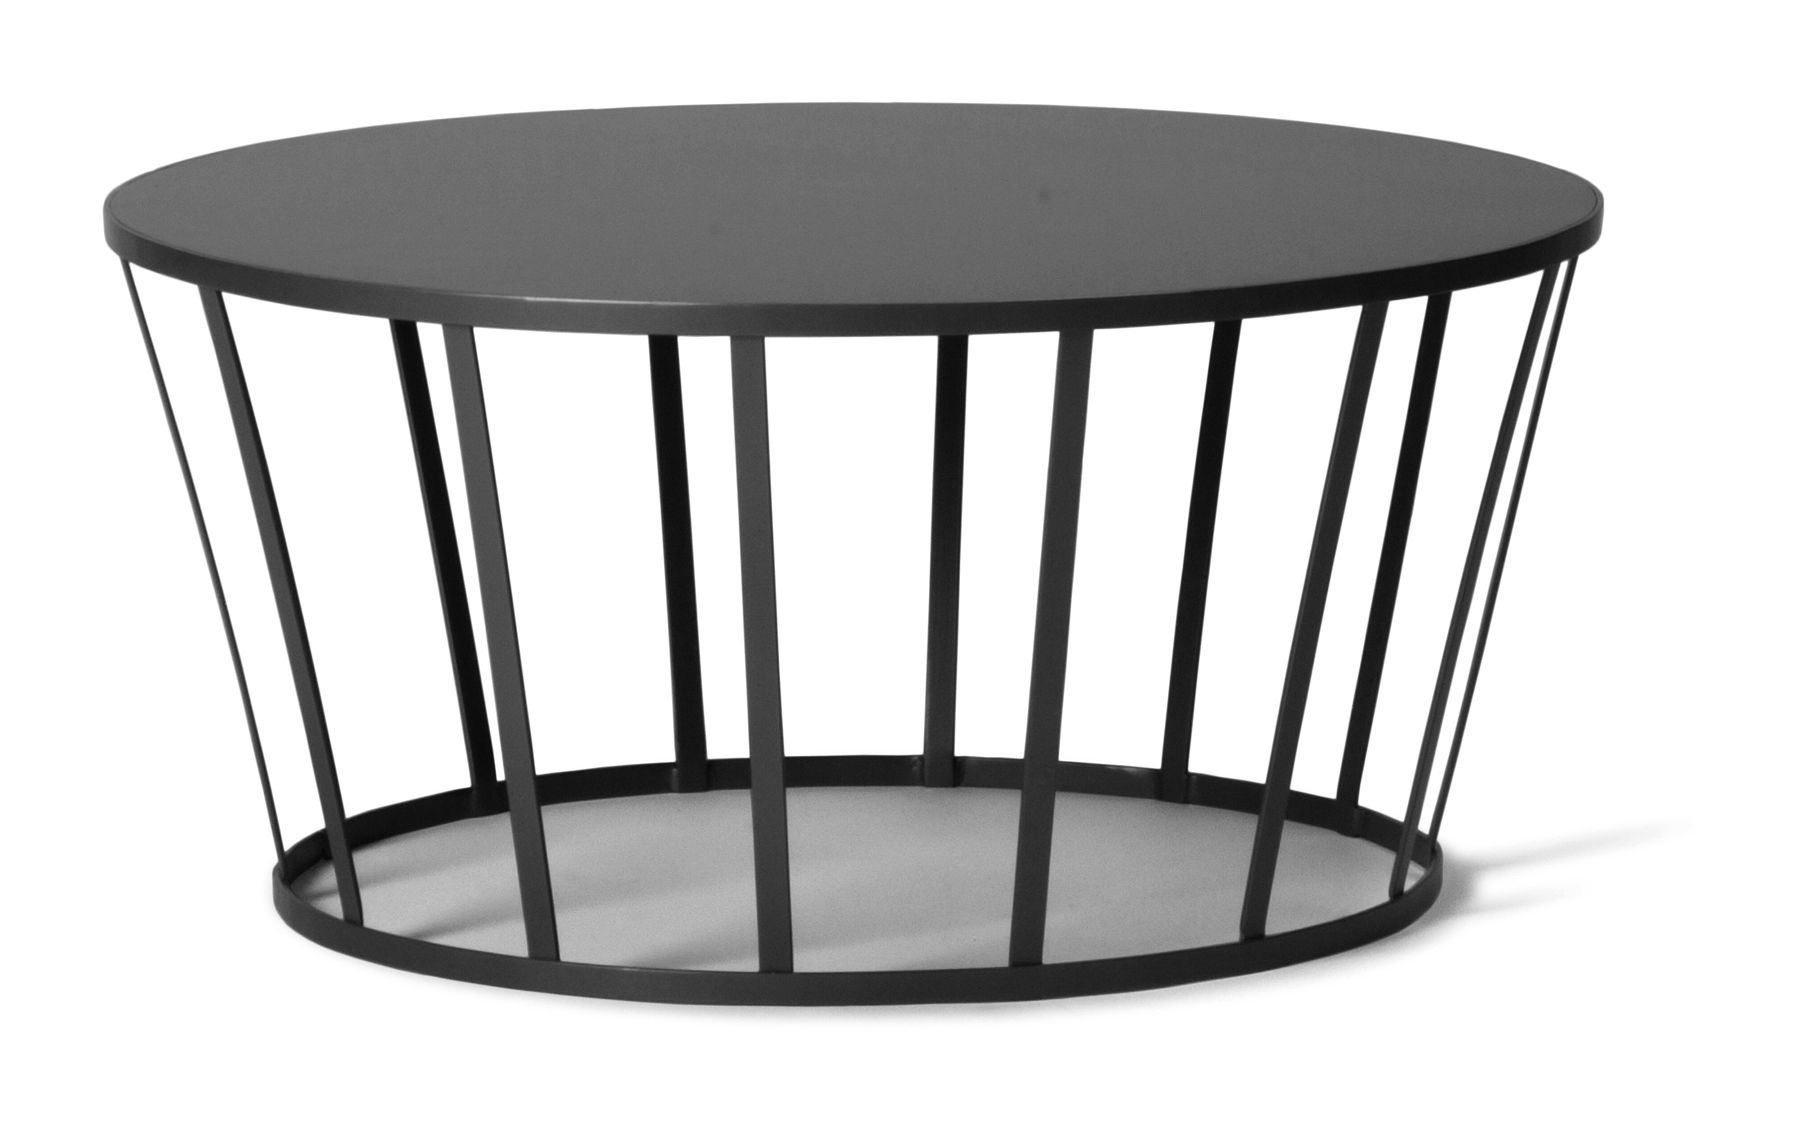 Mobilier - Tables basses - Table basse Hollo / Ø 70 x H 33 cm - Petite Friture - Anthracite - Acier inoxydable peint epoxy